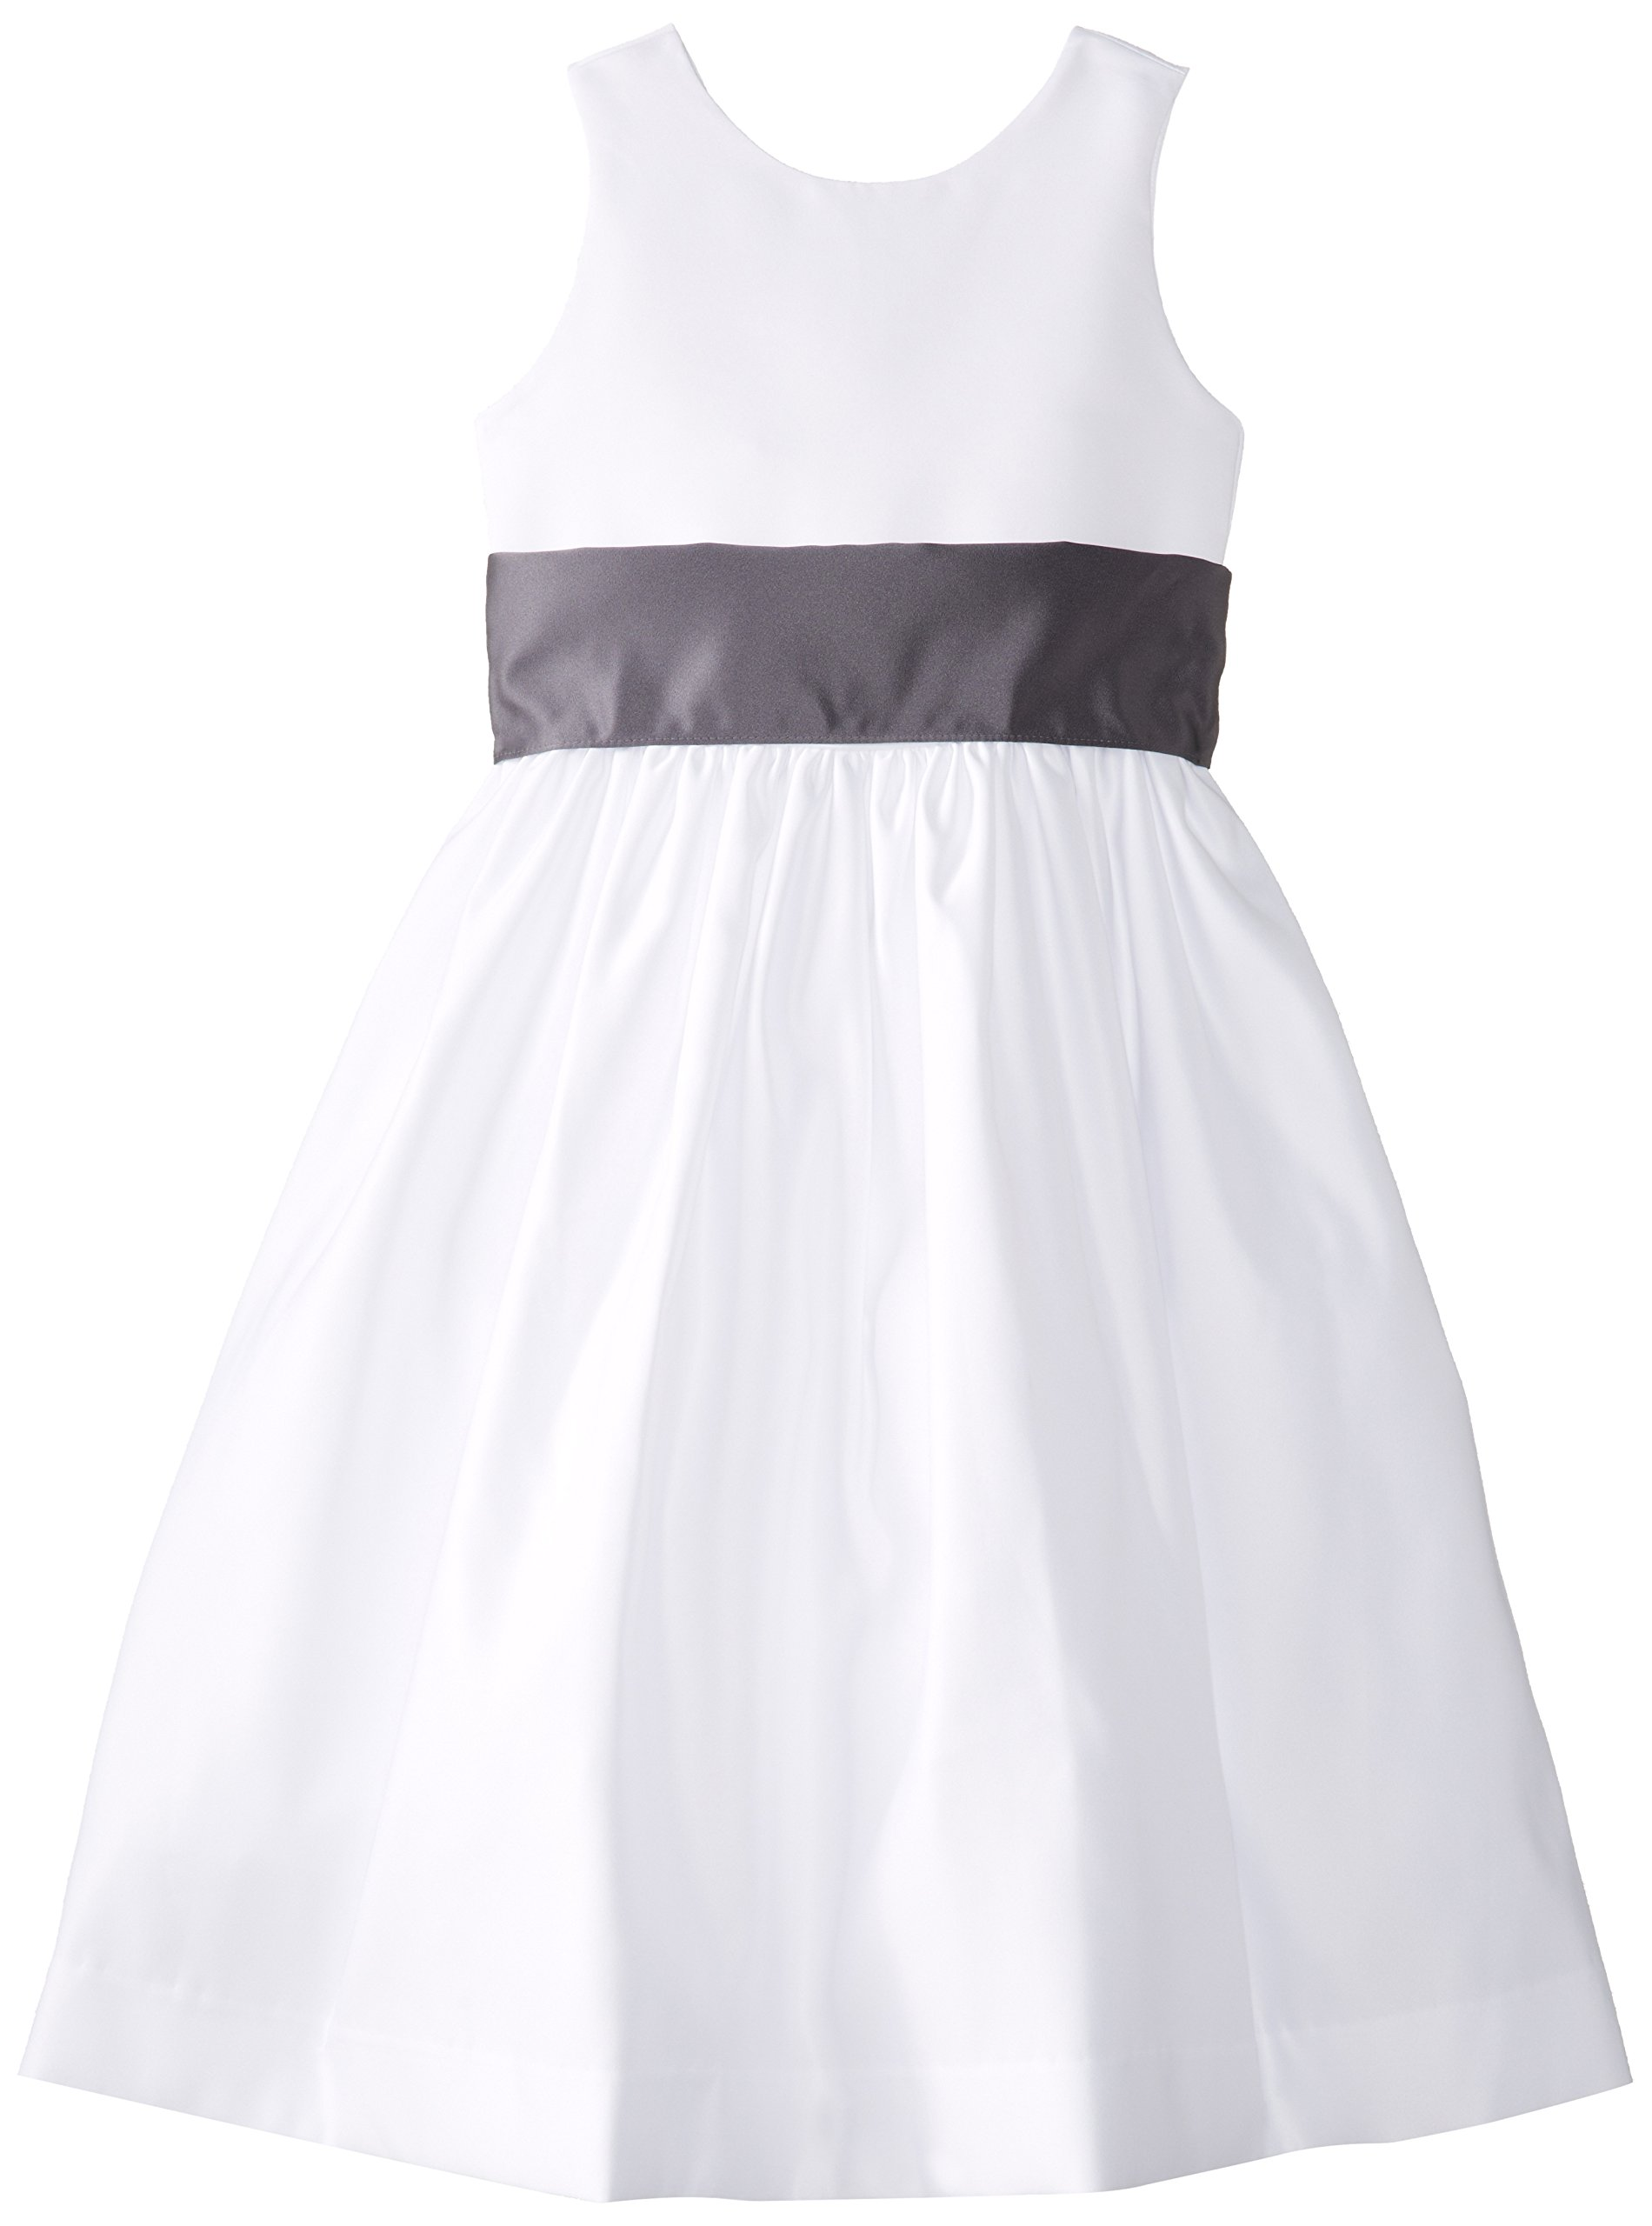 Us Angels Little Girls' Toddler White Dress with Sash, White/Pewter, 3T by US Angels